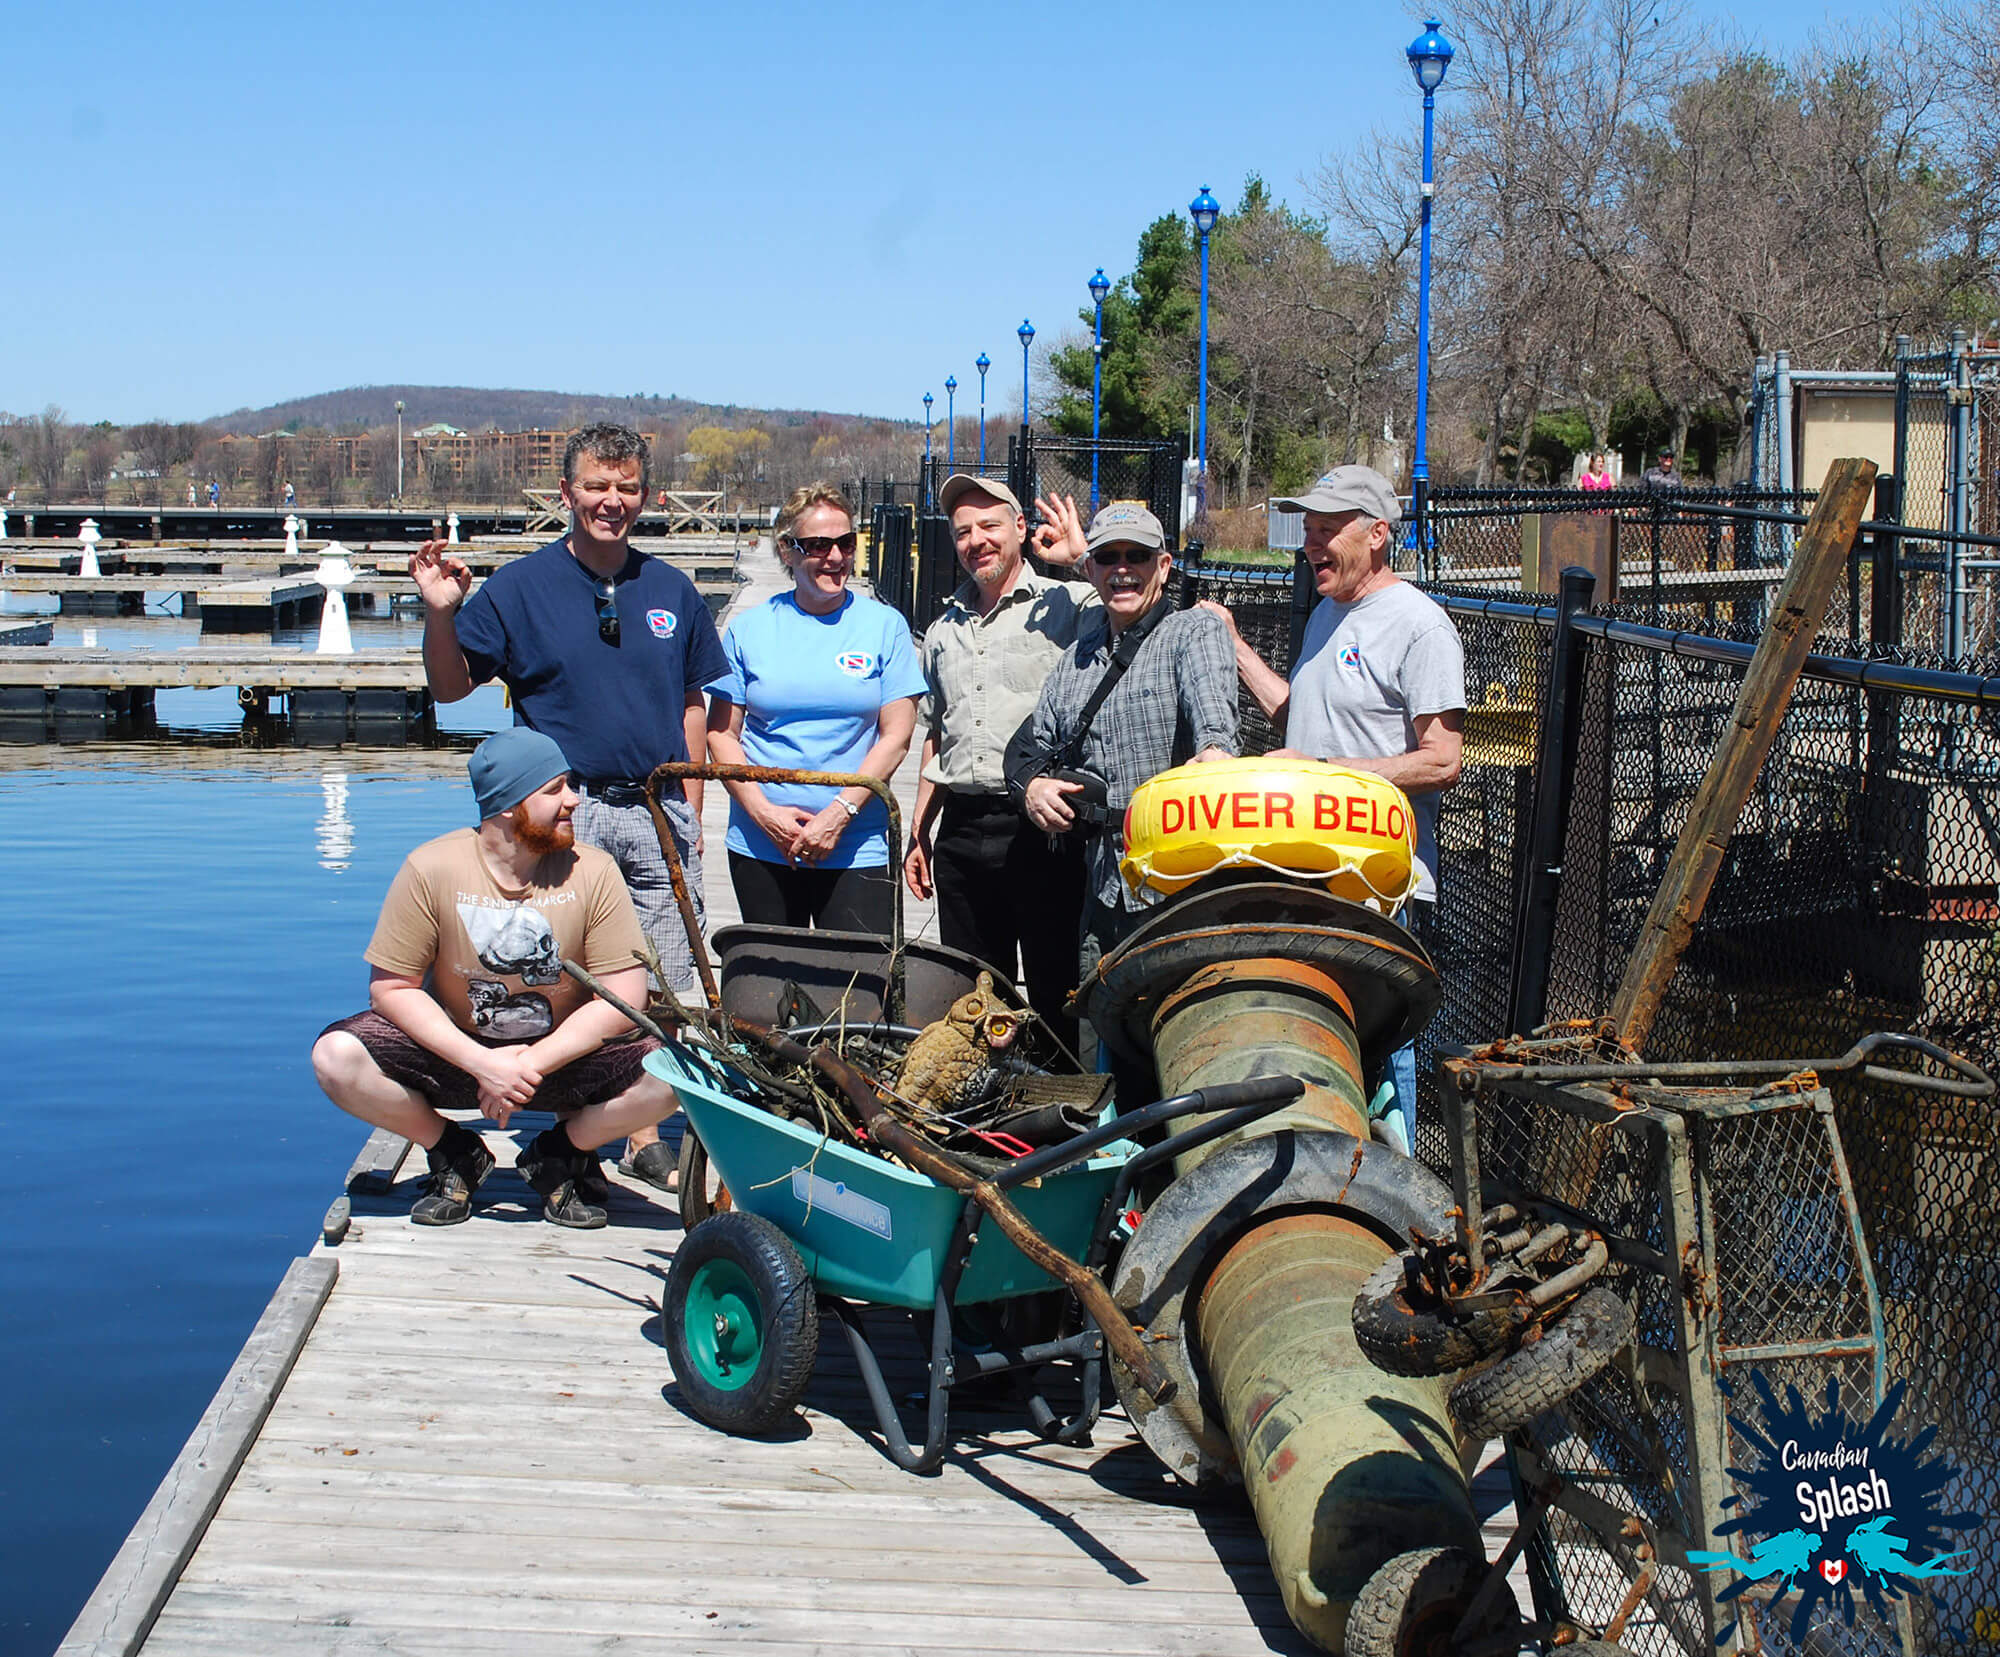 Team Photo Of The Scuba Diving Clean Up Crew At The North Bay Harbour, Ontario, Scuba Diving Canada